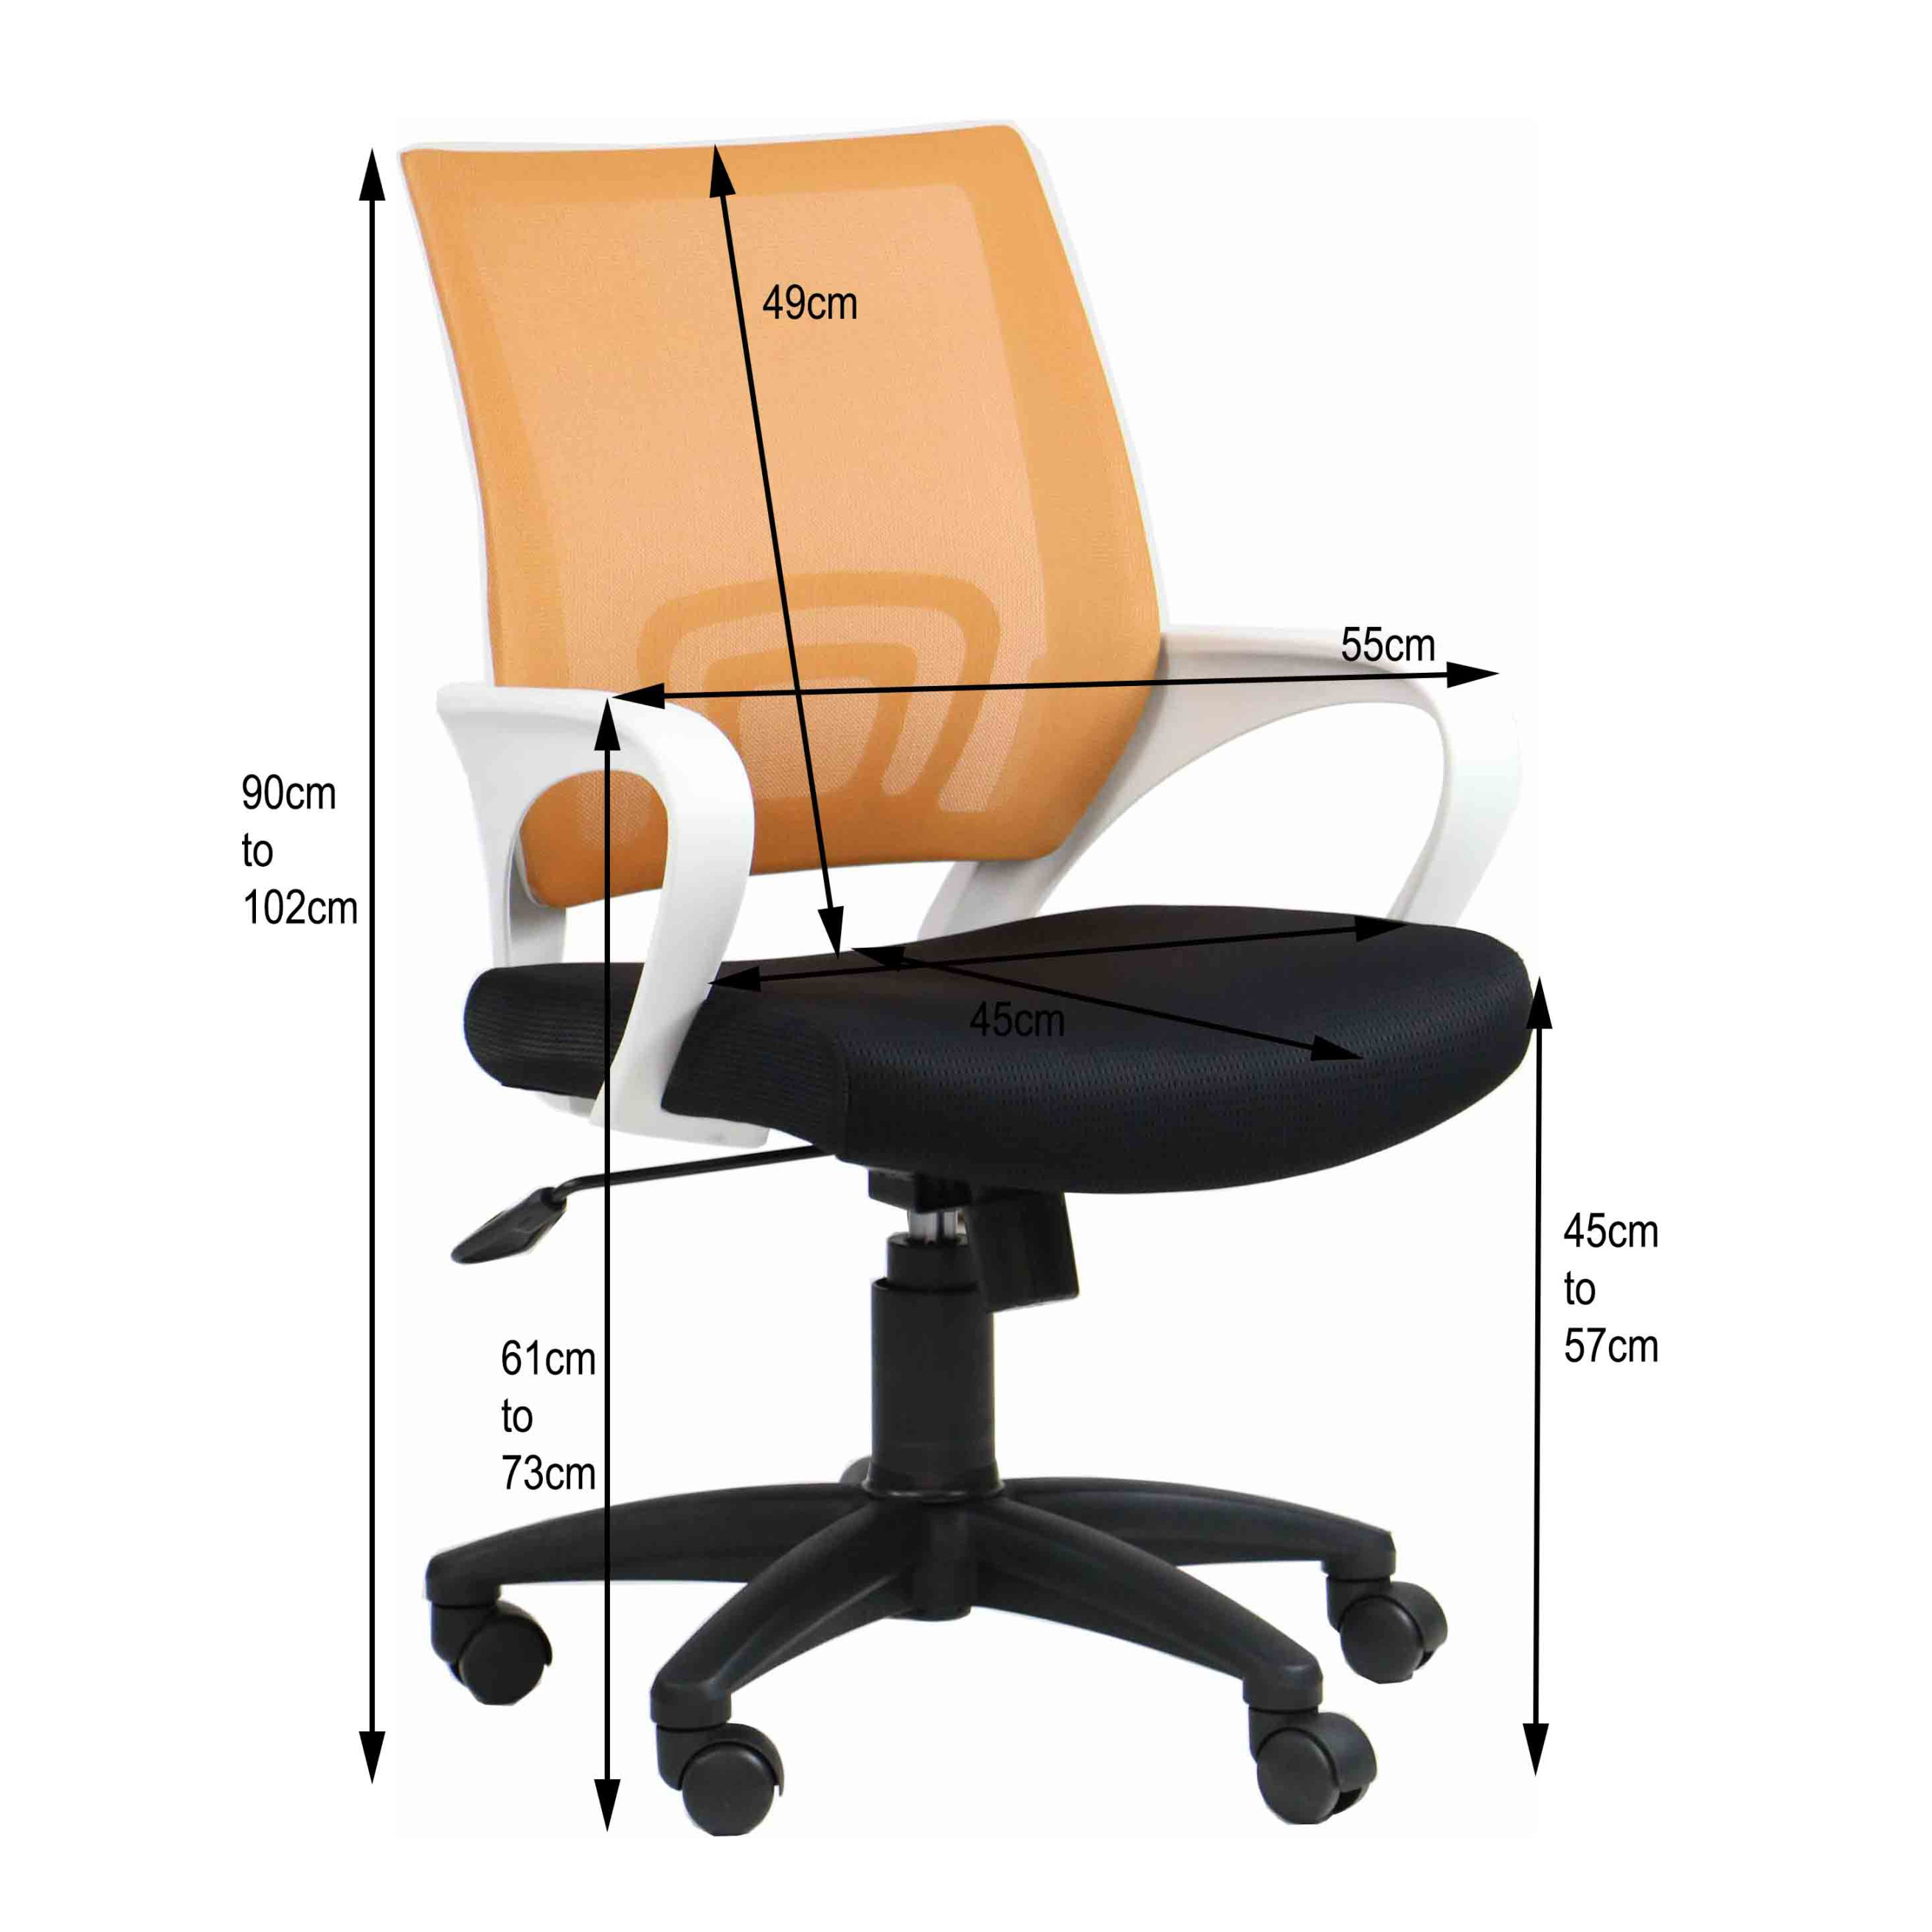 Low Back Office Chair Aof Jean Lumbar Support Low Back Office Chair